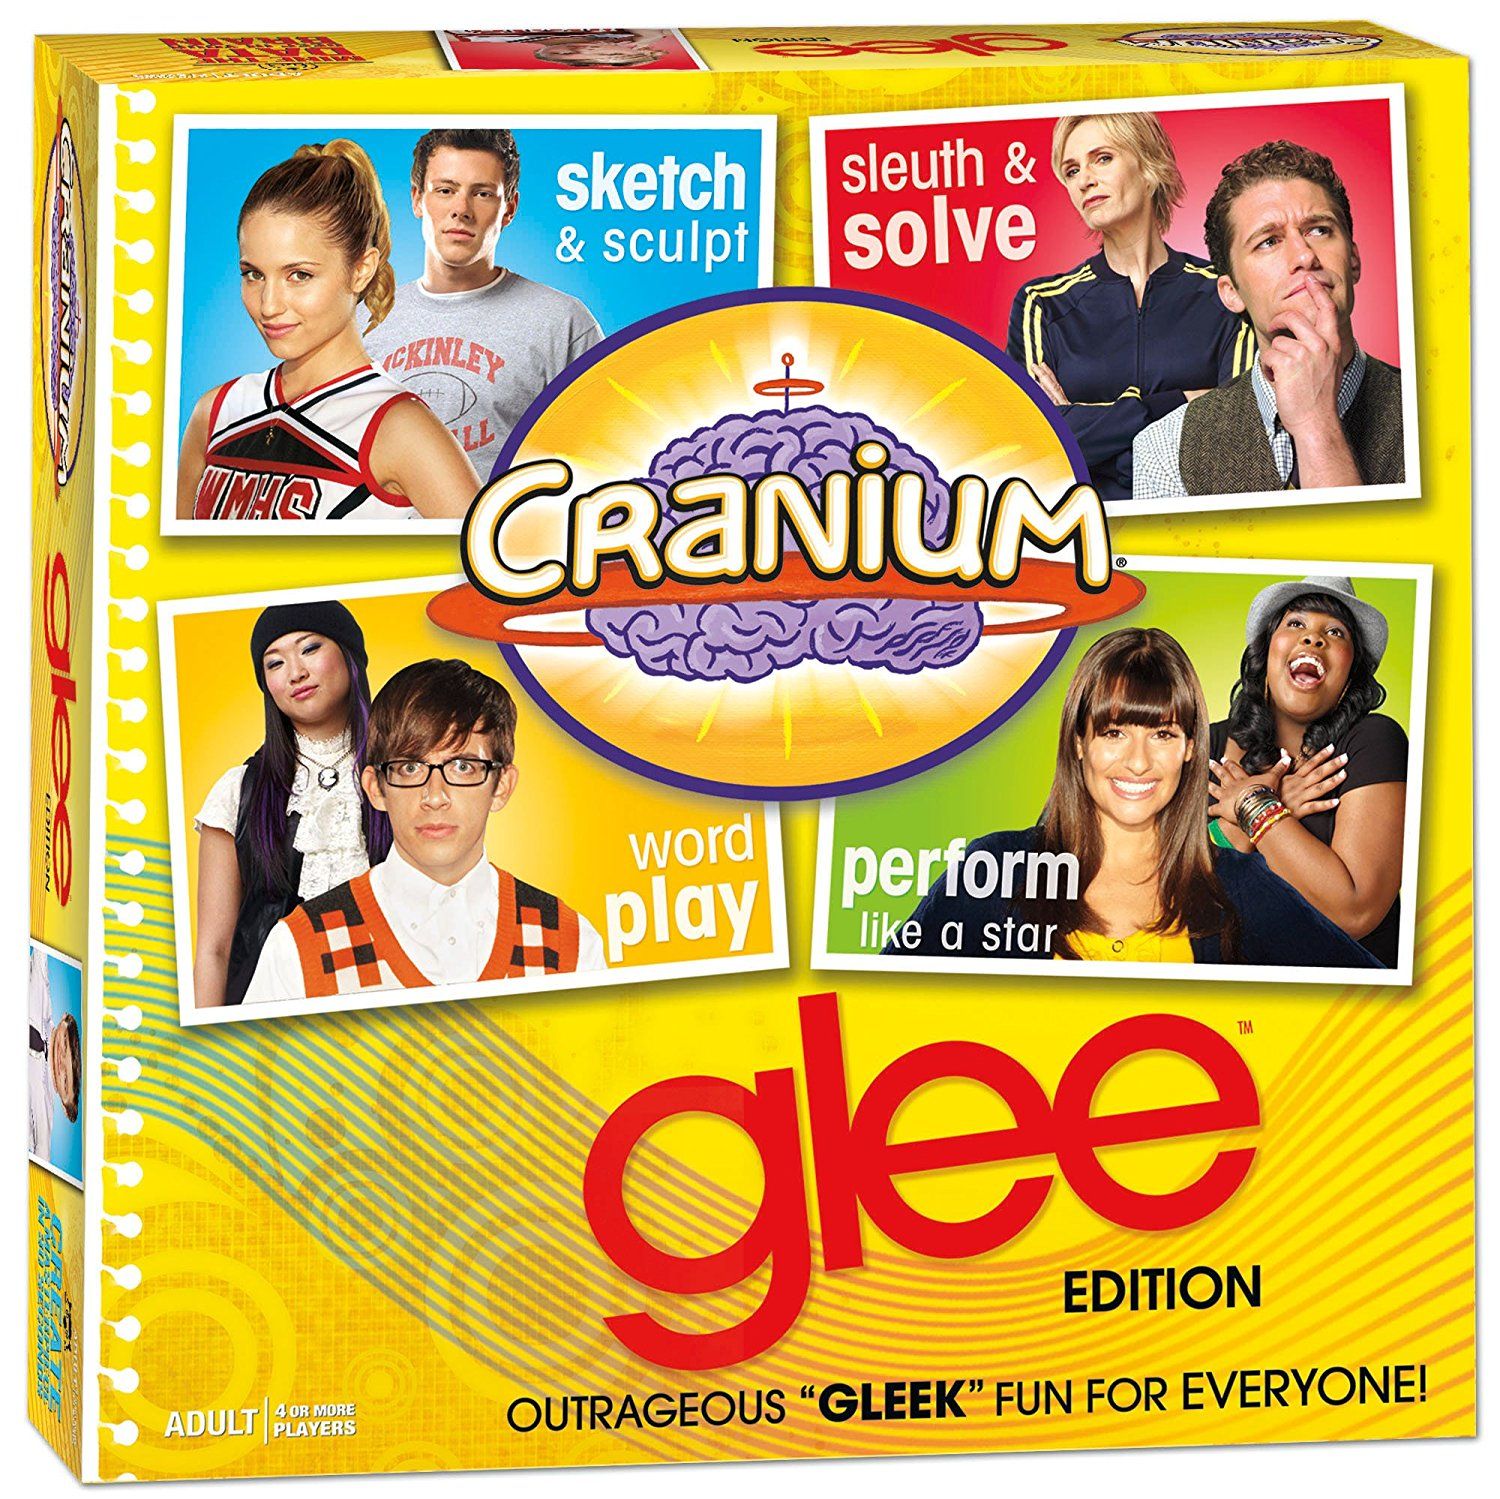 Glee , 600 glee questions and activities By Cranium by